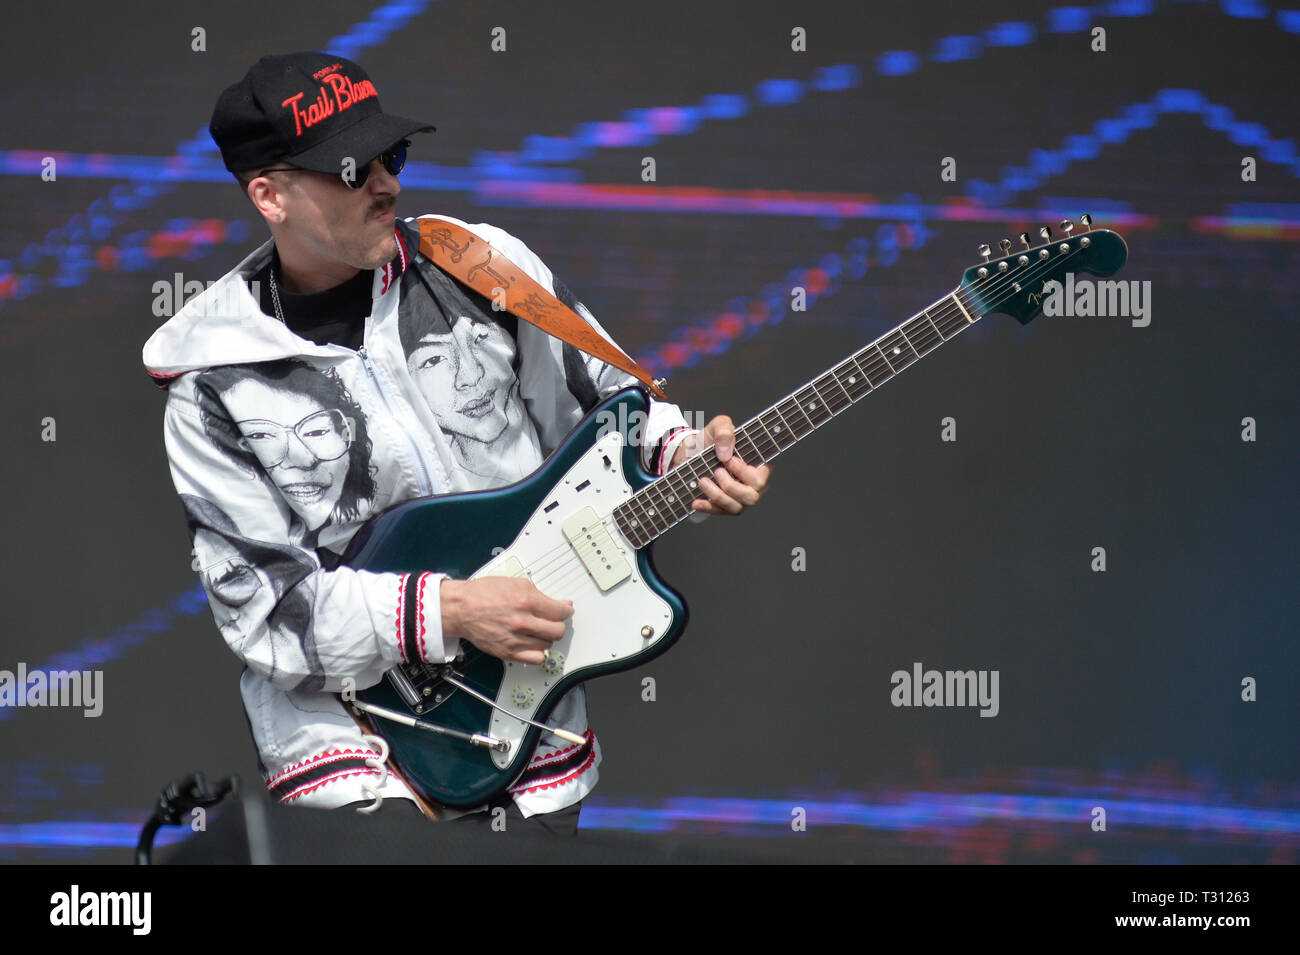 Sao Paulo, Brazil. 05th Apr, 2019. Portugal The Man performs at the Lollapalooza 2019 festival, held at the Autodromo de Interlagos in São Paulo on Friday, 05. (PHOTO: LEVI BIANCO/BRAZIL PHOTO PRESS) Credit: Brazil Photo Press/Alamy Live News - Stock Image